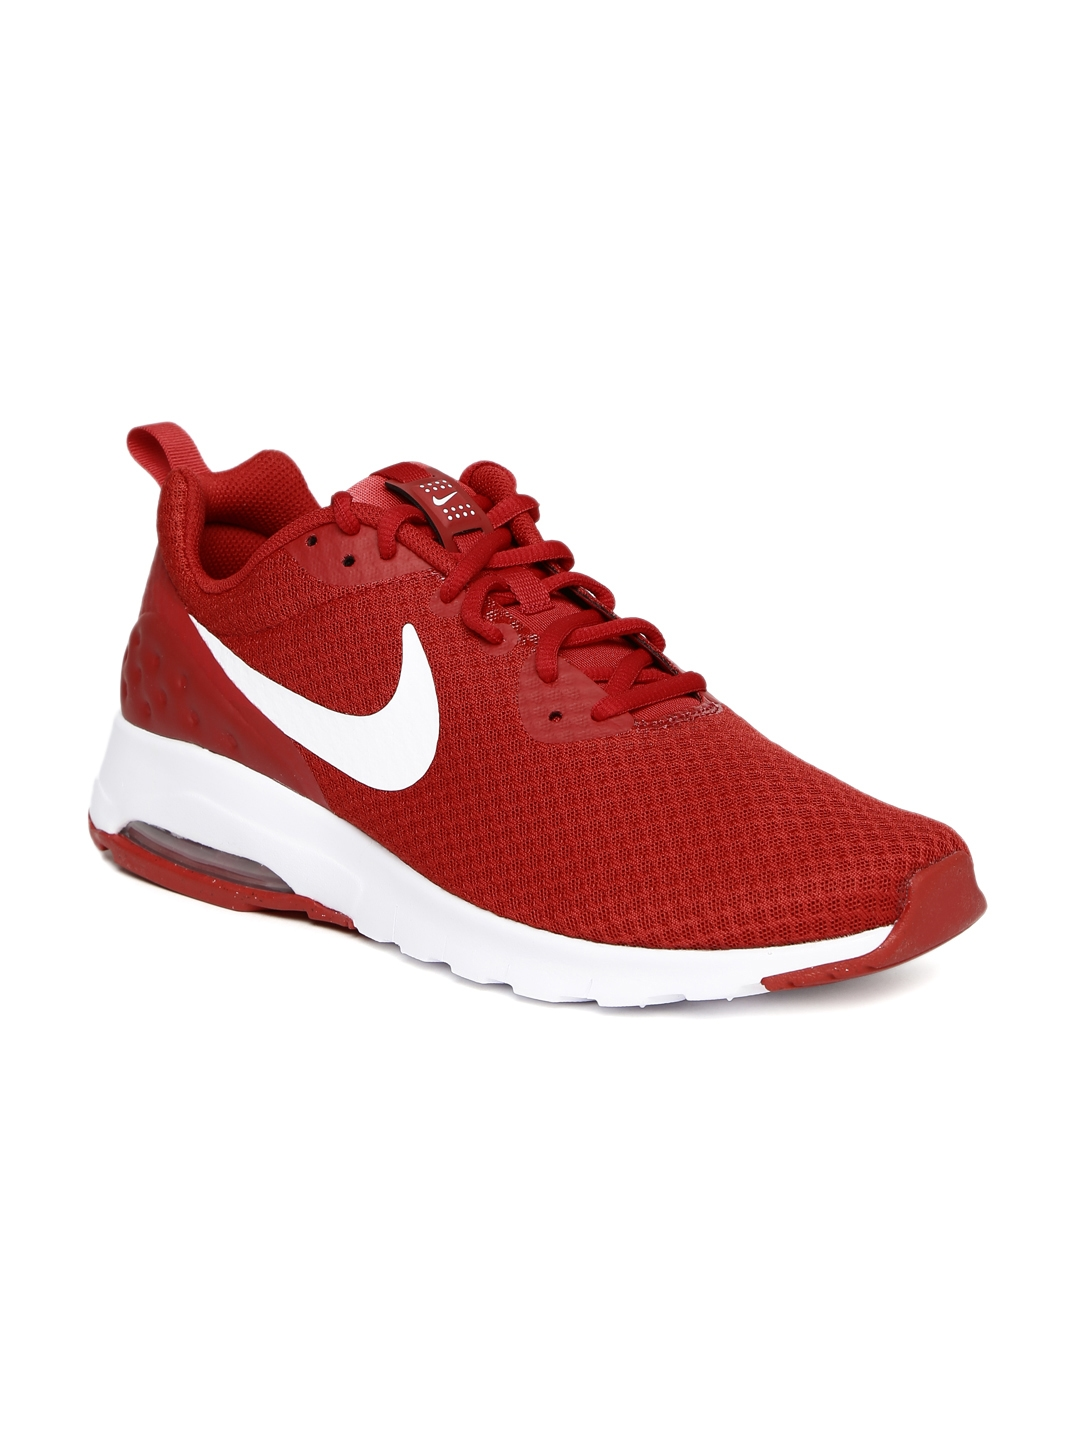 wholesale dealer 8c2fd bba29 Nike Men Red AIR MAX MOTION Sneakers